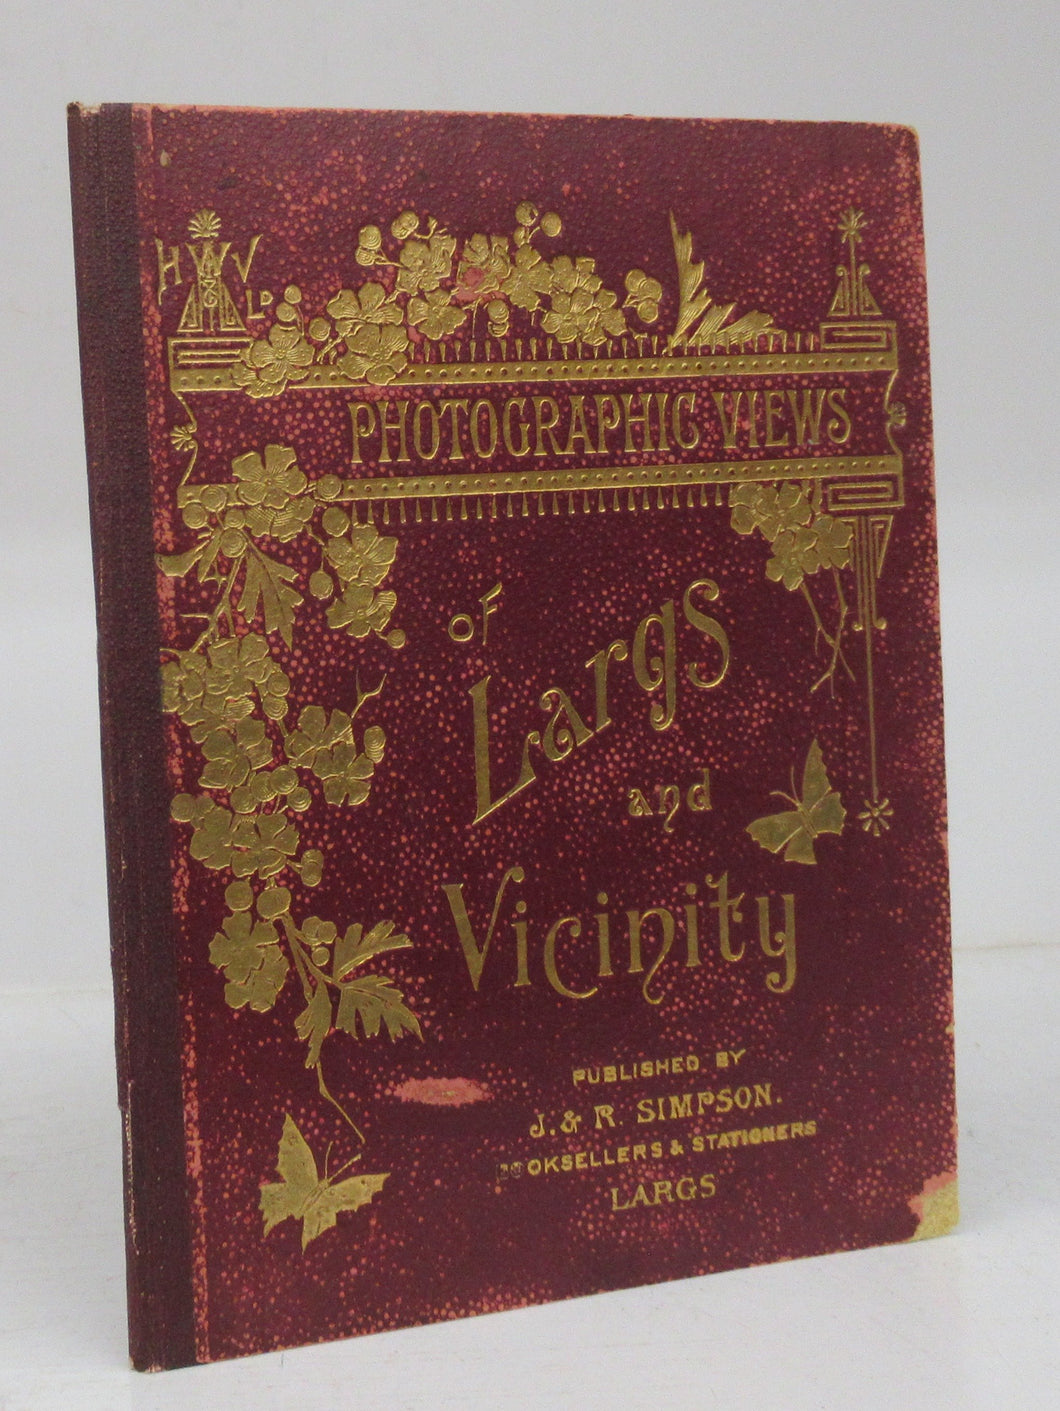 Photographic Views of Largs and Vicinity